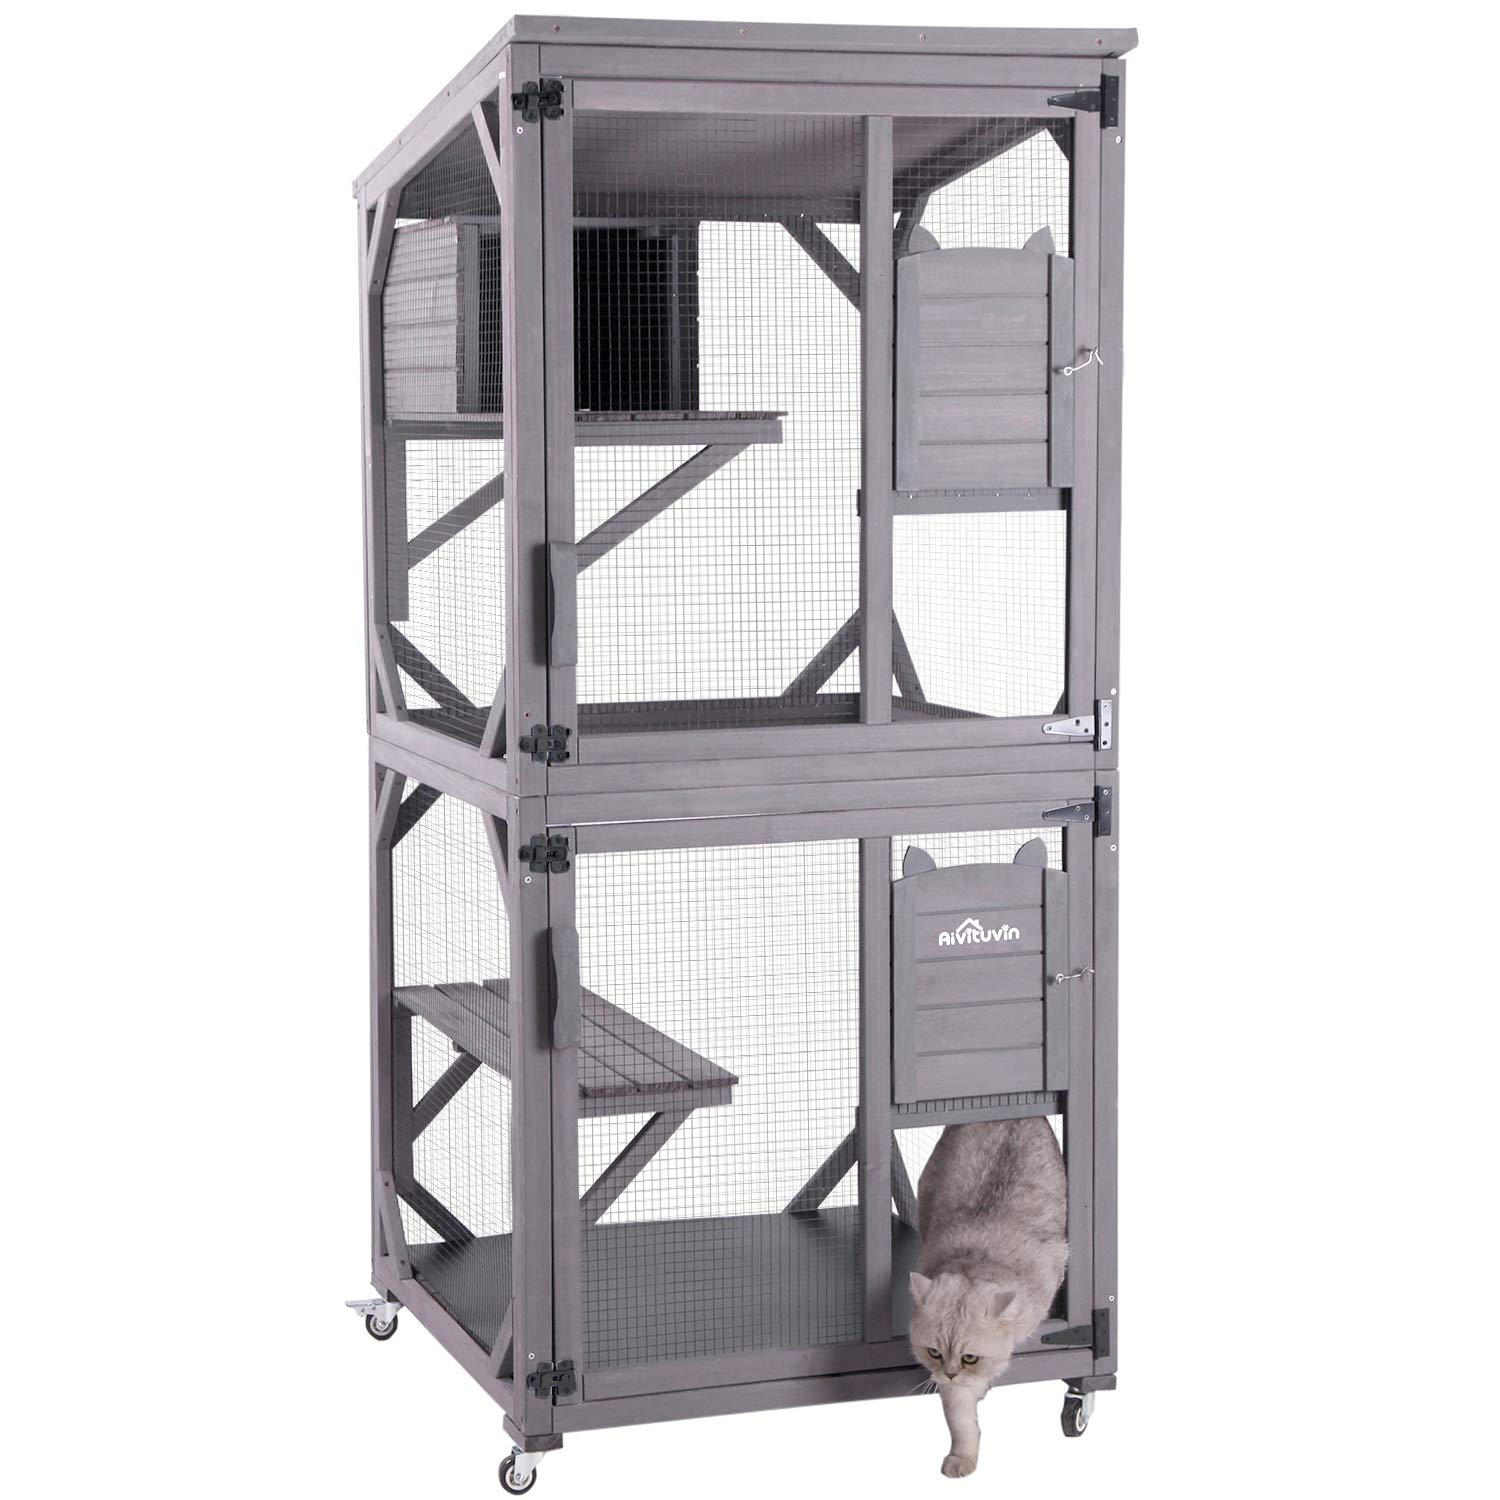 Aivituvin Wooden Cat House Outdoor And Indoor Run Large Cat Enclosure On Wheels 70 9 Upgraded Version Catio Cage With Buy Online In Cayman Islands At Cayman Desertcart Com Productid 229824839